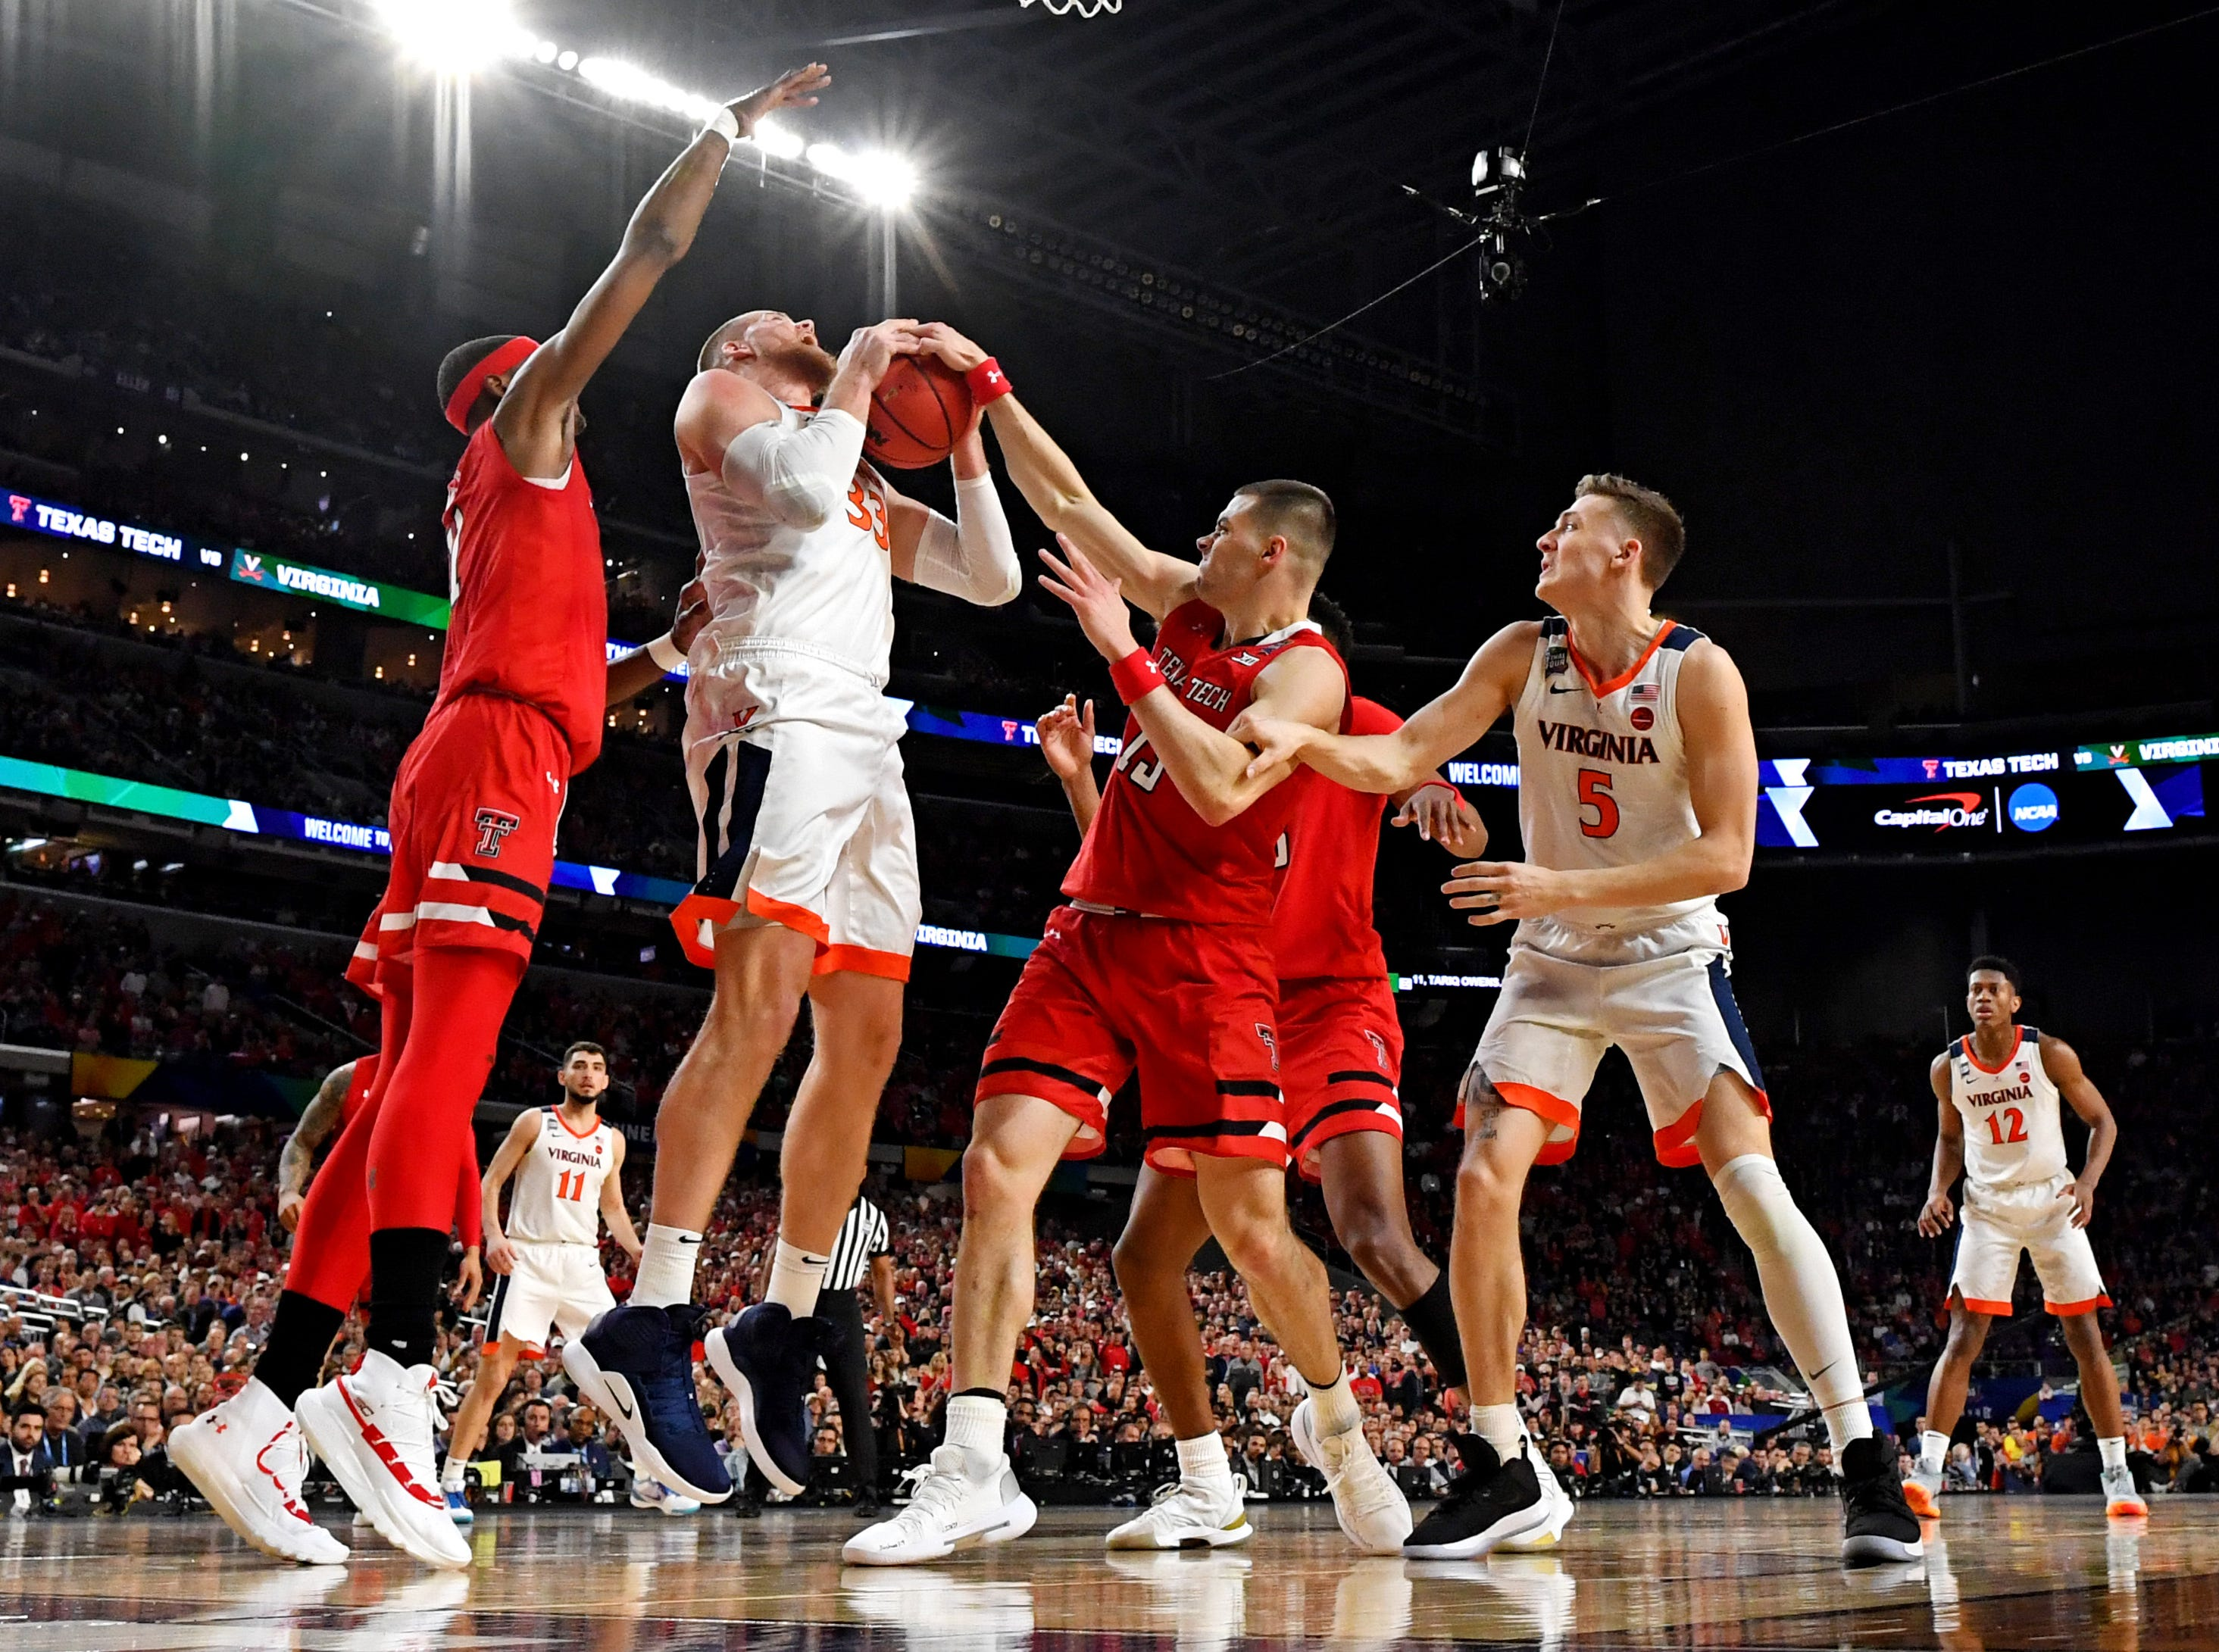 Apr 8, 2019; Minneapolis, MN, USA; Texas Tech Red Raiders guard Matt Mooney (13) blocks a shot by Virginia Cavaliers center Jack Salt (33) during the first half in the championship game of the 2019 men's Final Four at US Bank Stadium. Mandatory Credit: Bob Donnan-USA TODAY Sports